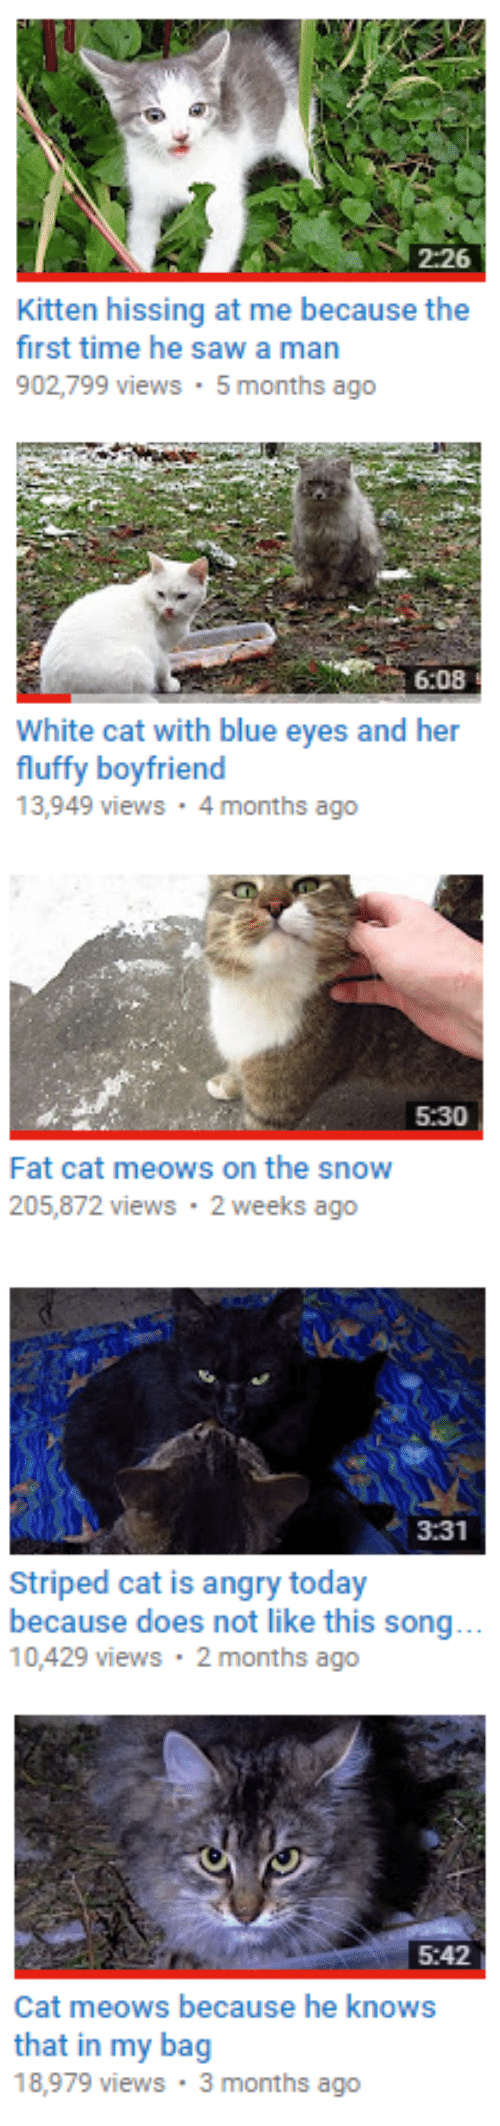 Saw, Blue, and Snow: 2:26  Kitten hissing at me because the  first time he saw a man  902,799 views 5months ago   6:08  White cat with blue eyes and her  fluffy boyfriend  13,949 views 4 months ago   5:30  Fat cat meows on the snow  205,872 views 2 weeks ago   3:31  Striped cat is angry today  because does not like this song  10,429 views 2 months ago   5:42  Cat meows because he knows  that in my bag  18,979 views 3 months ago